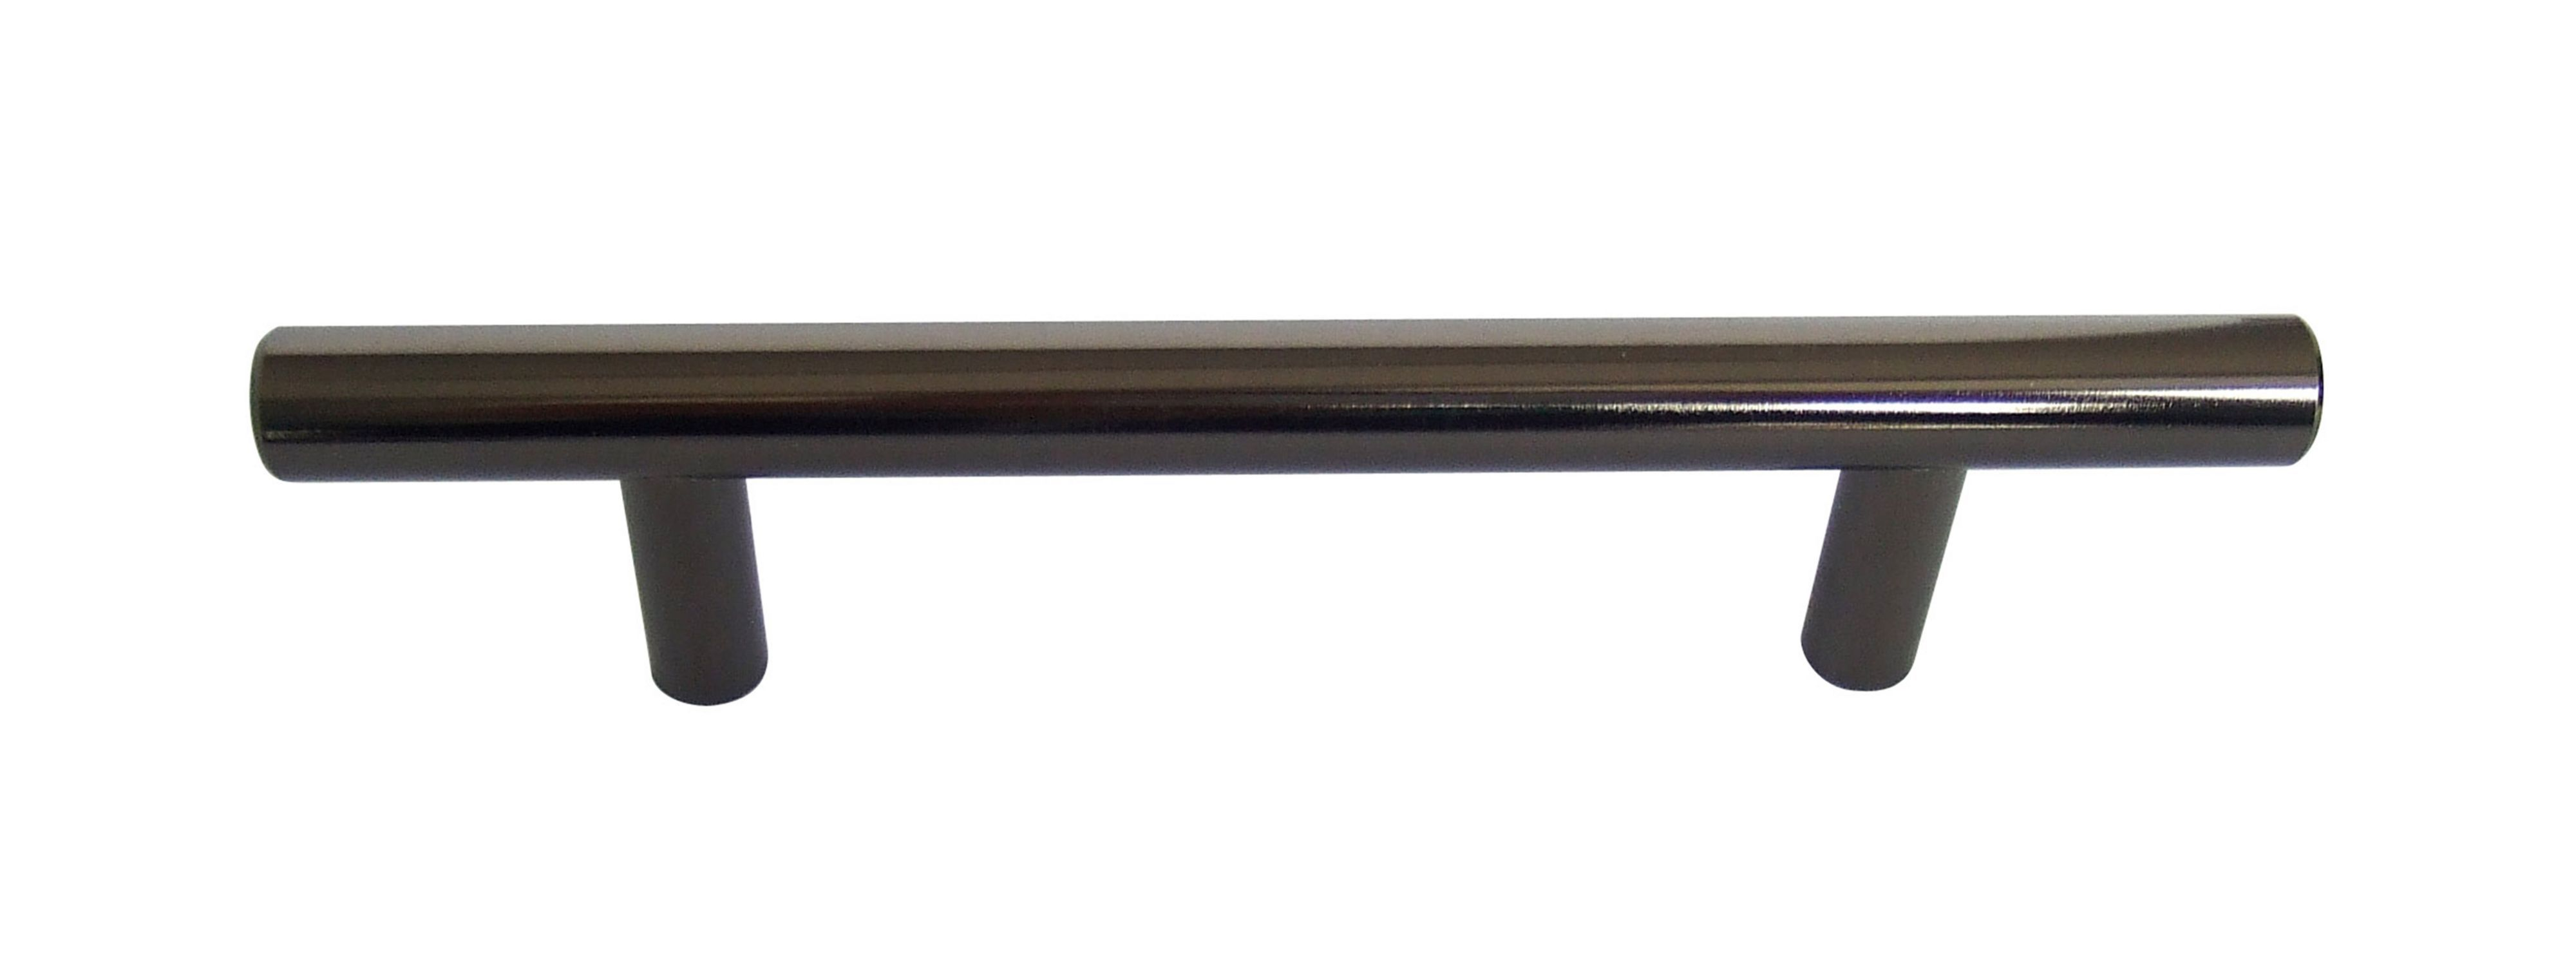 B Q Black Nickel Straight Interior Door Pull Cabinet Handle